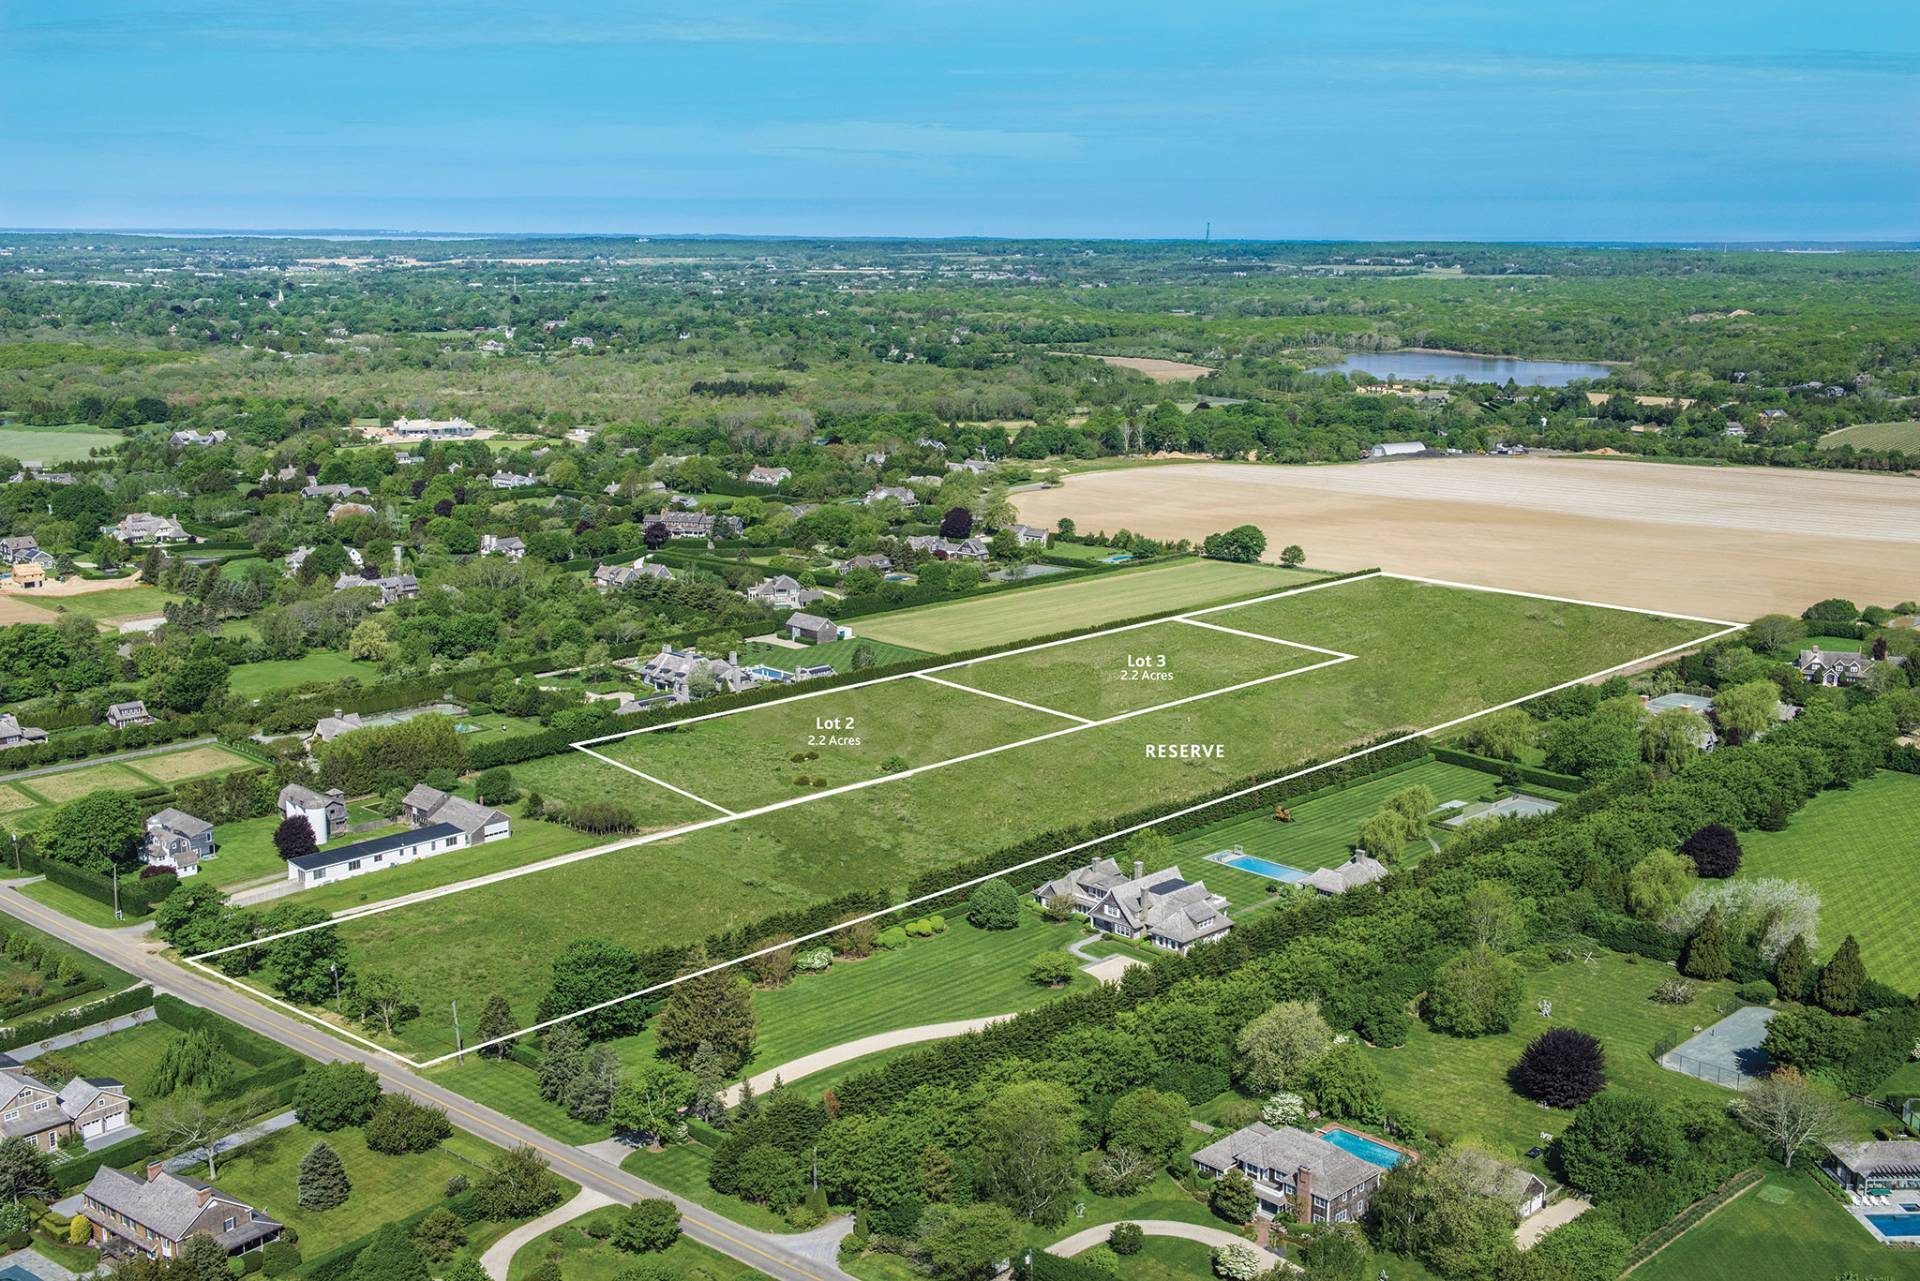 Land for Sale at The Land At Luna Farm 284 Parsonage Lane - Lot 3, Sagaponack, New York